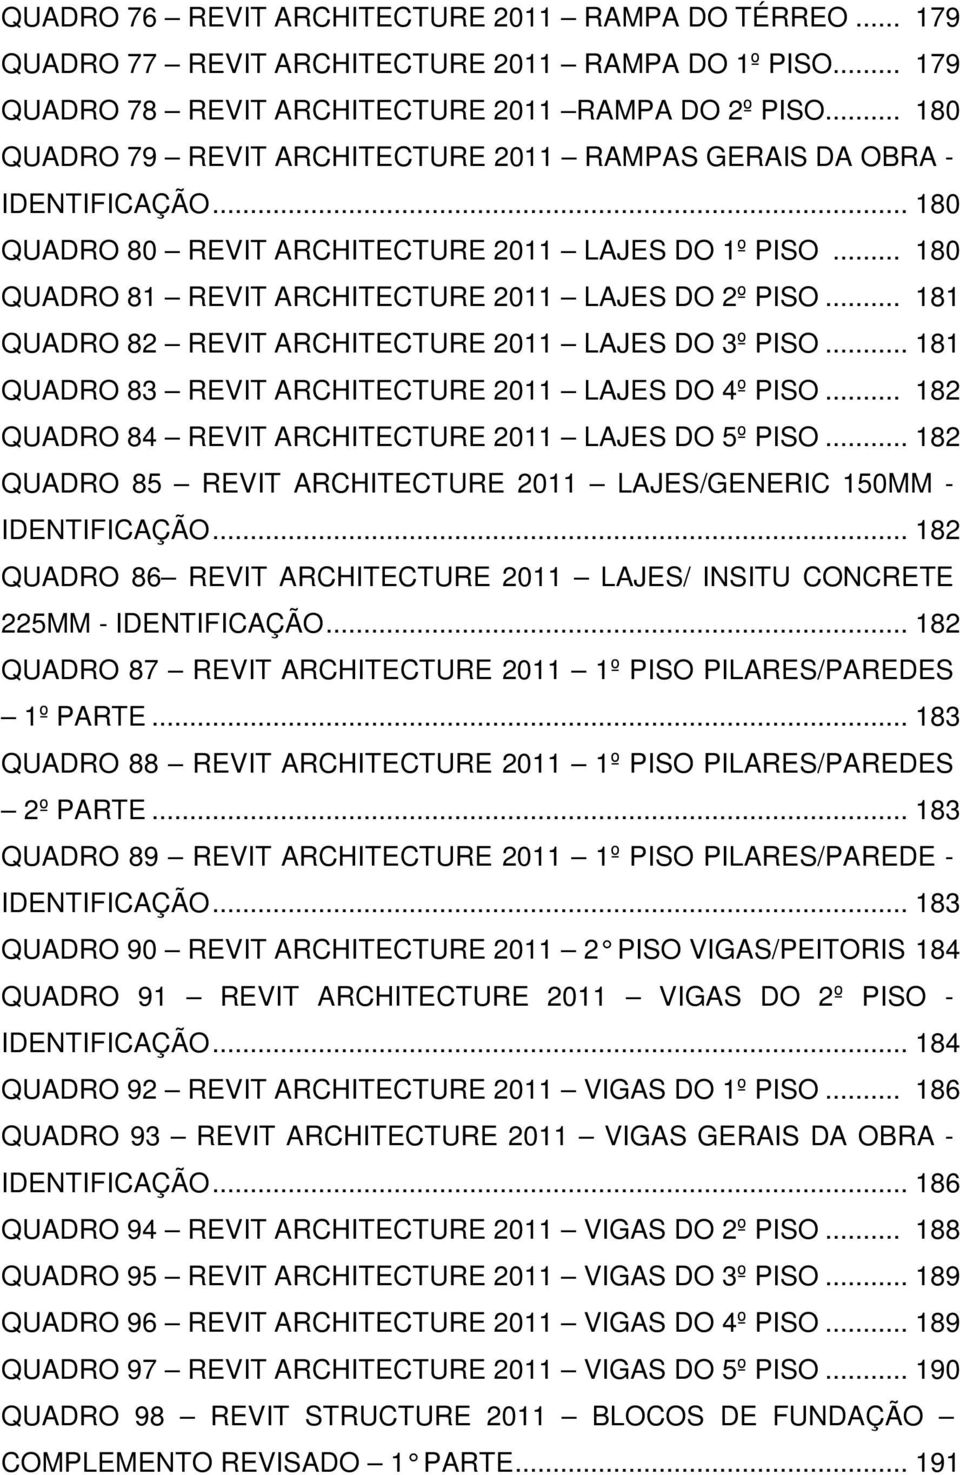 .. 181 QUADRO 82 REVIT ARCHITECTURE 2011 LAJES DO 3º PISO... 181 QUADRO 83 REVIT ARCHITECTURE 2011 LAJES DO 4º PISO... 182 QUADRO 84 REVIT ARCHITECTURE 2011 LAJES DO 5º PISO.